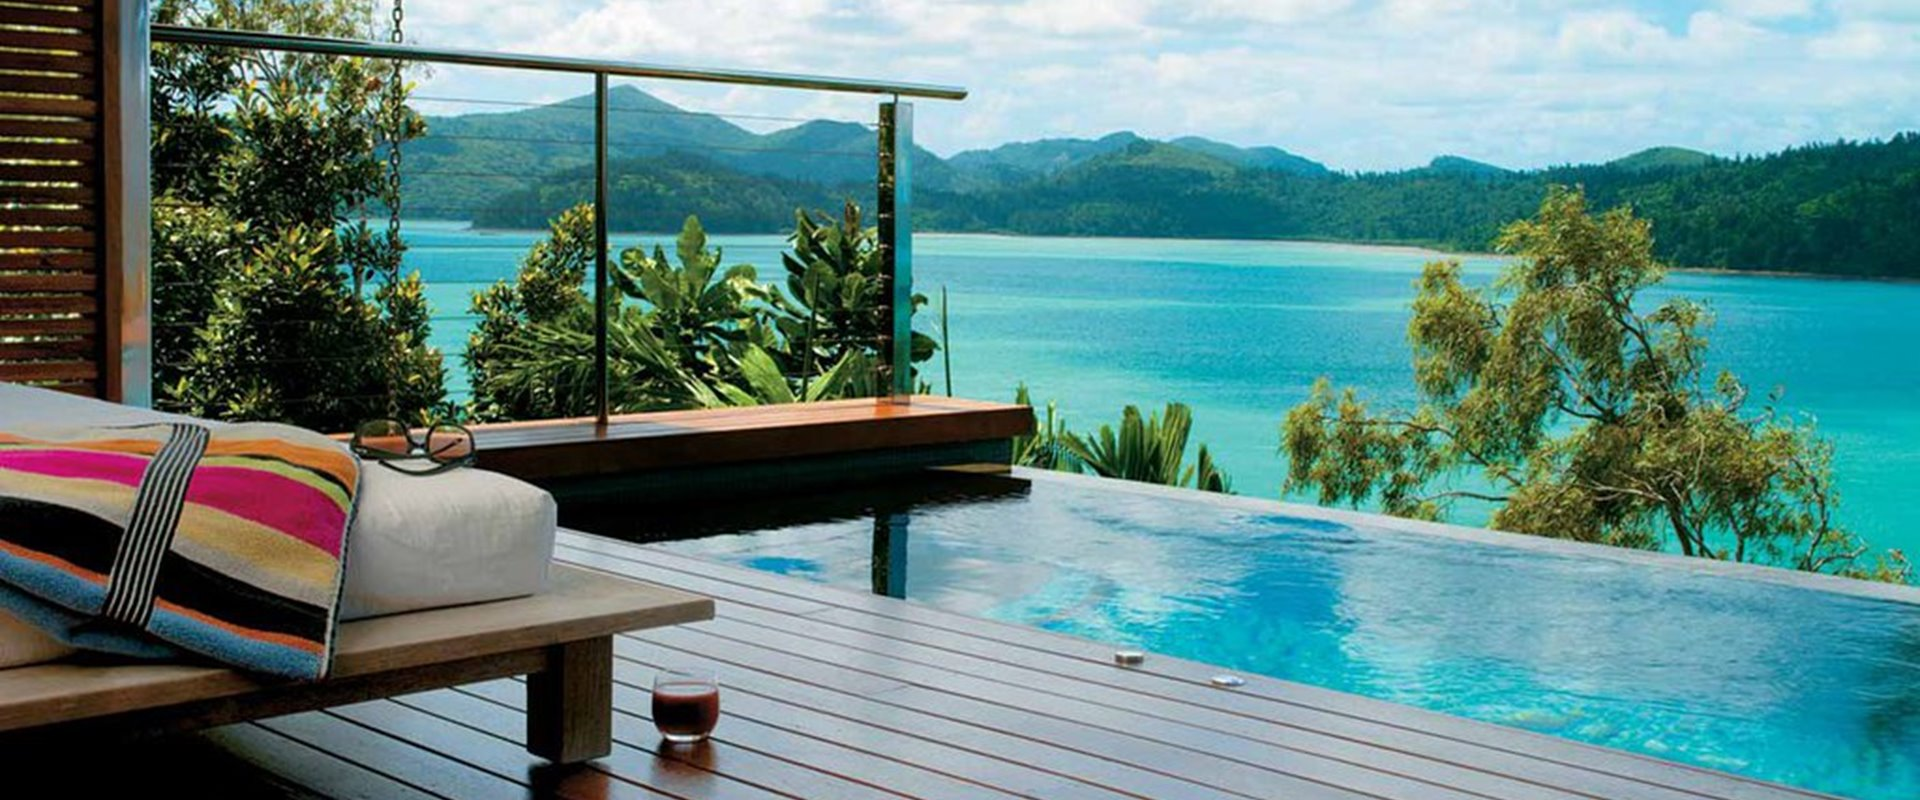 Hamilton Island | Conference Venues Whitsundays | Conference Venues Queensland